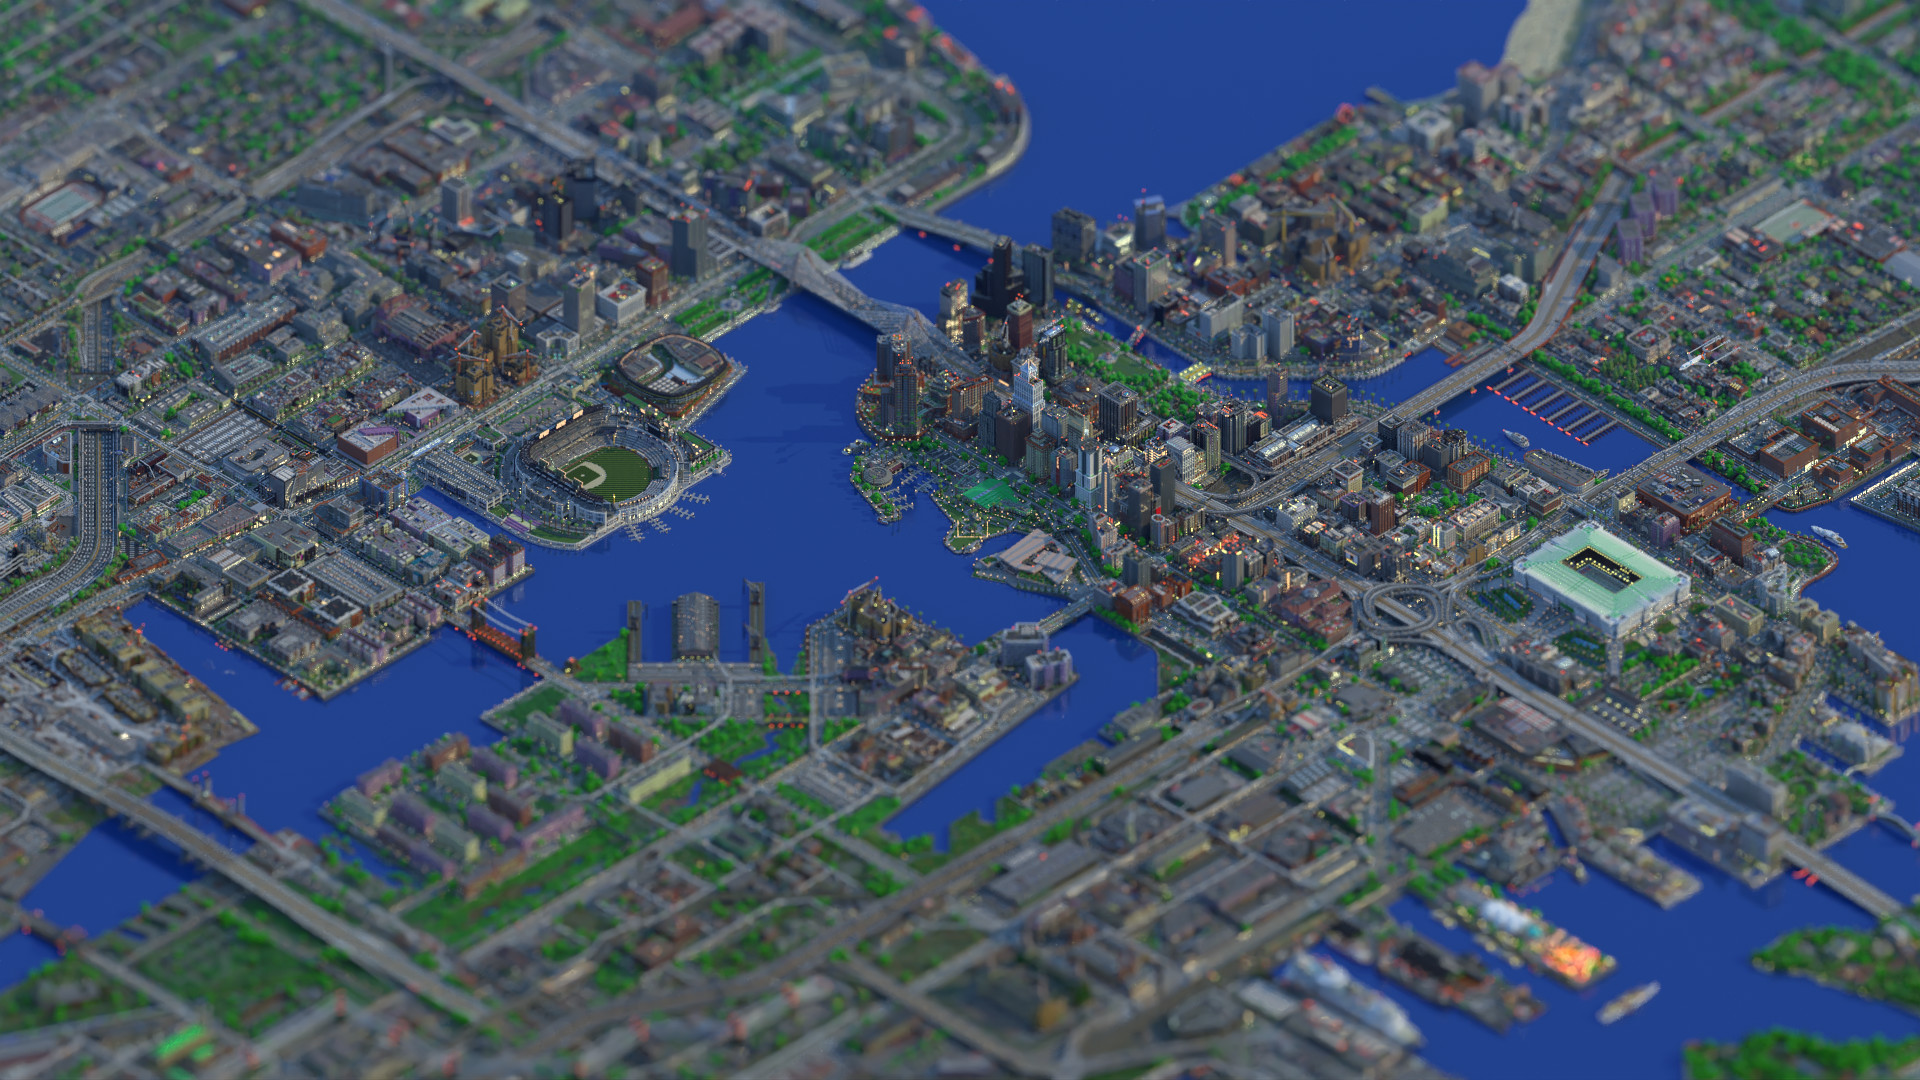 Isometric projection of an imported Minecraft map of Greenfield City, path traced with a depth of field effect and denoised (OIDN denoiser)